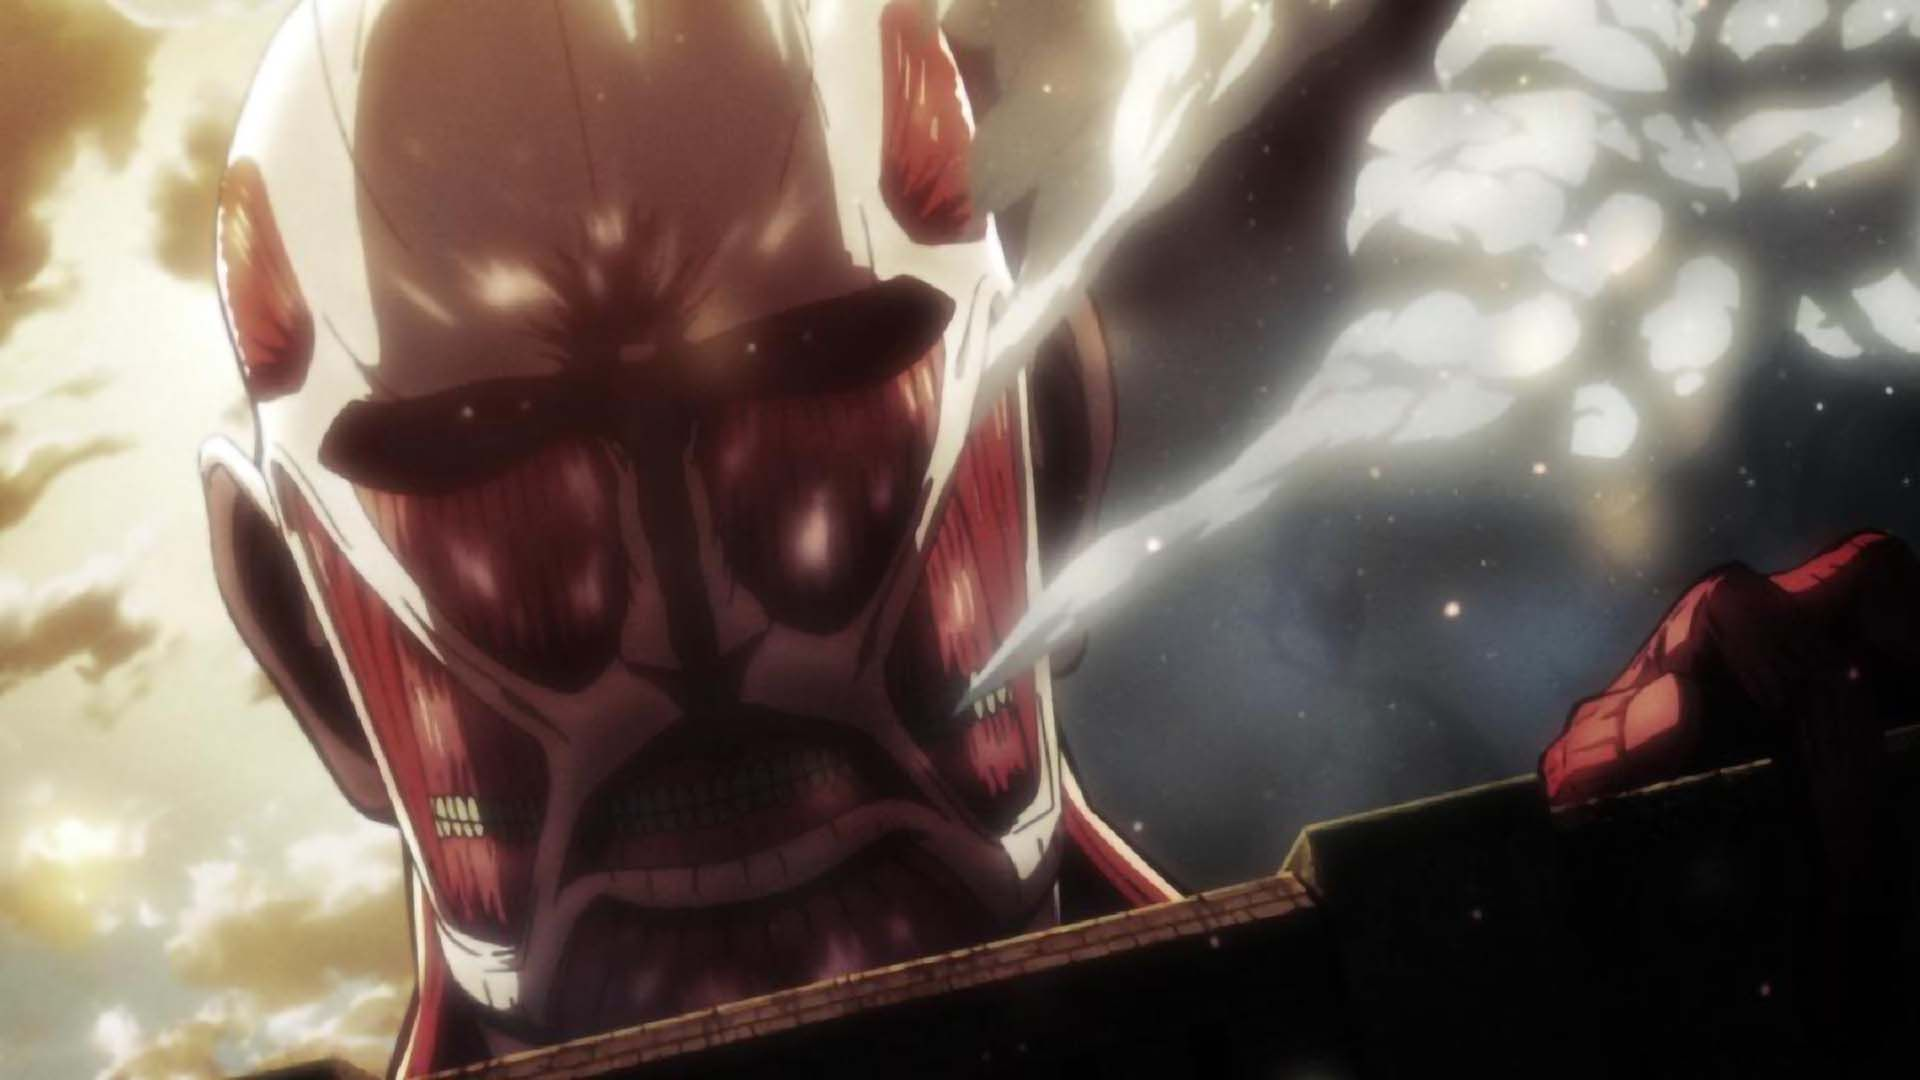 Watch Full Episodes Of Attack On Titan A Part Of Toonami On Adult Swim